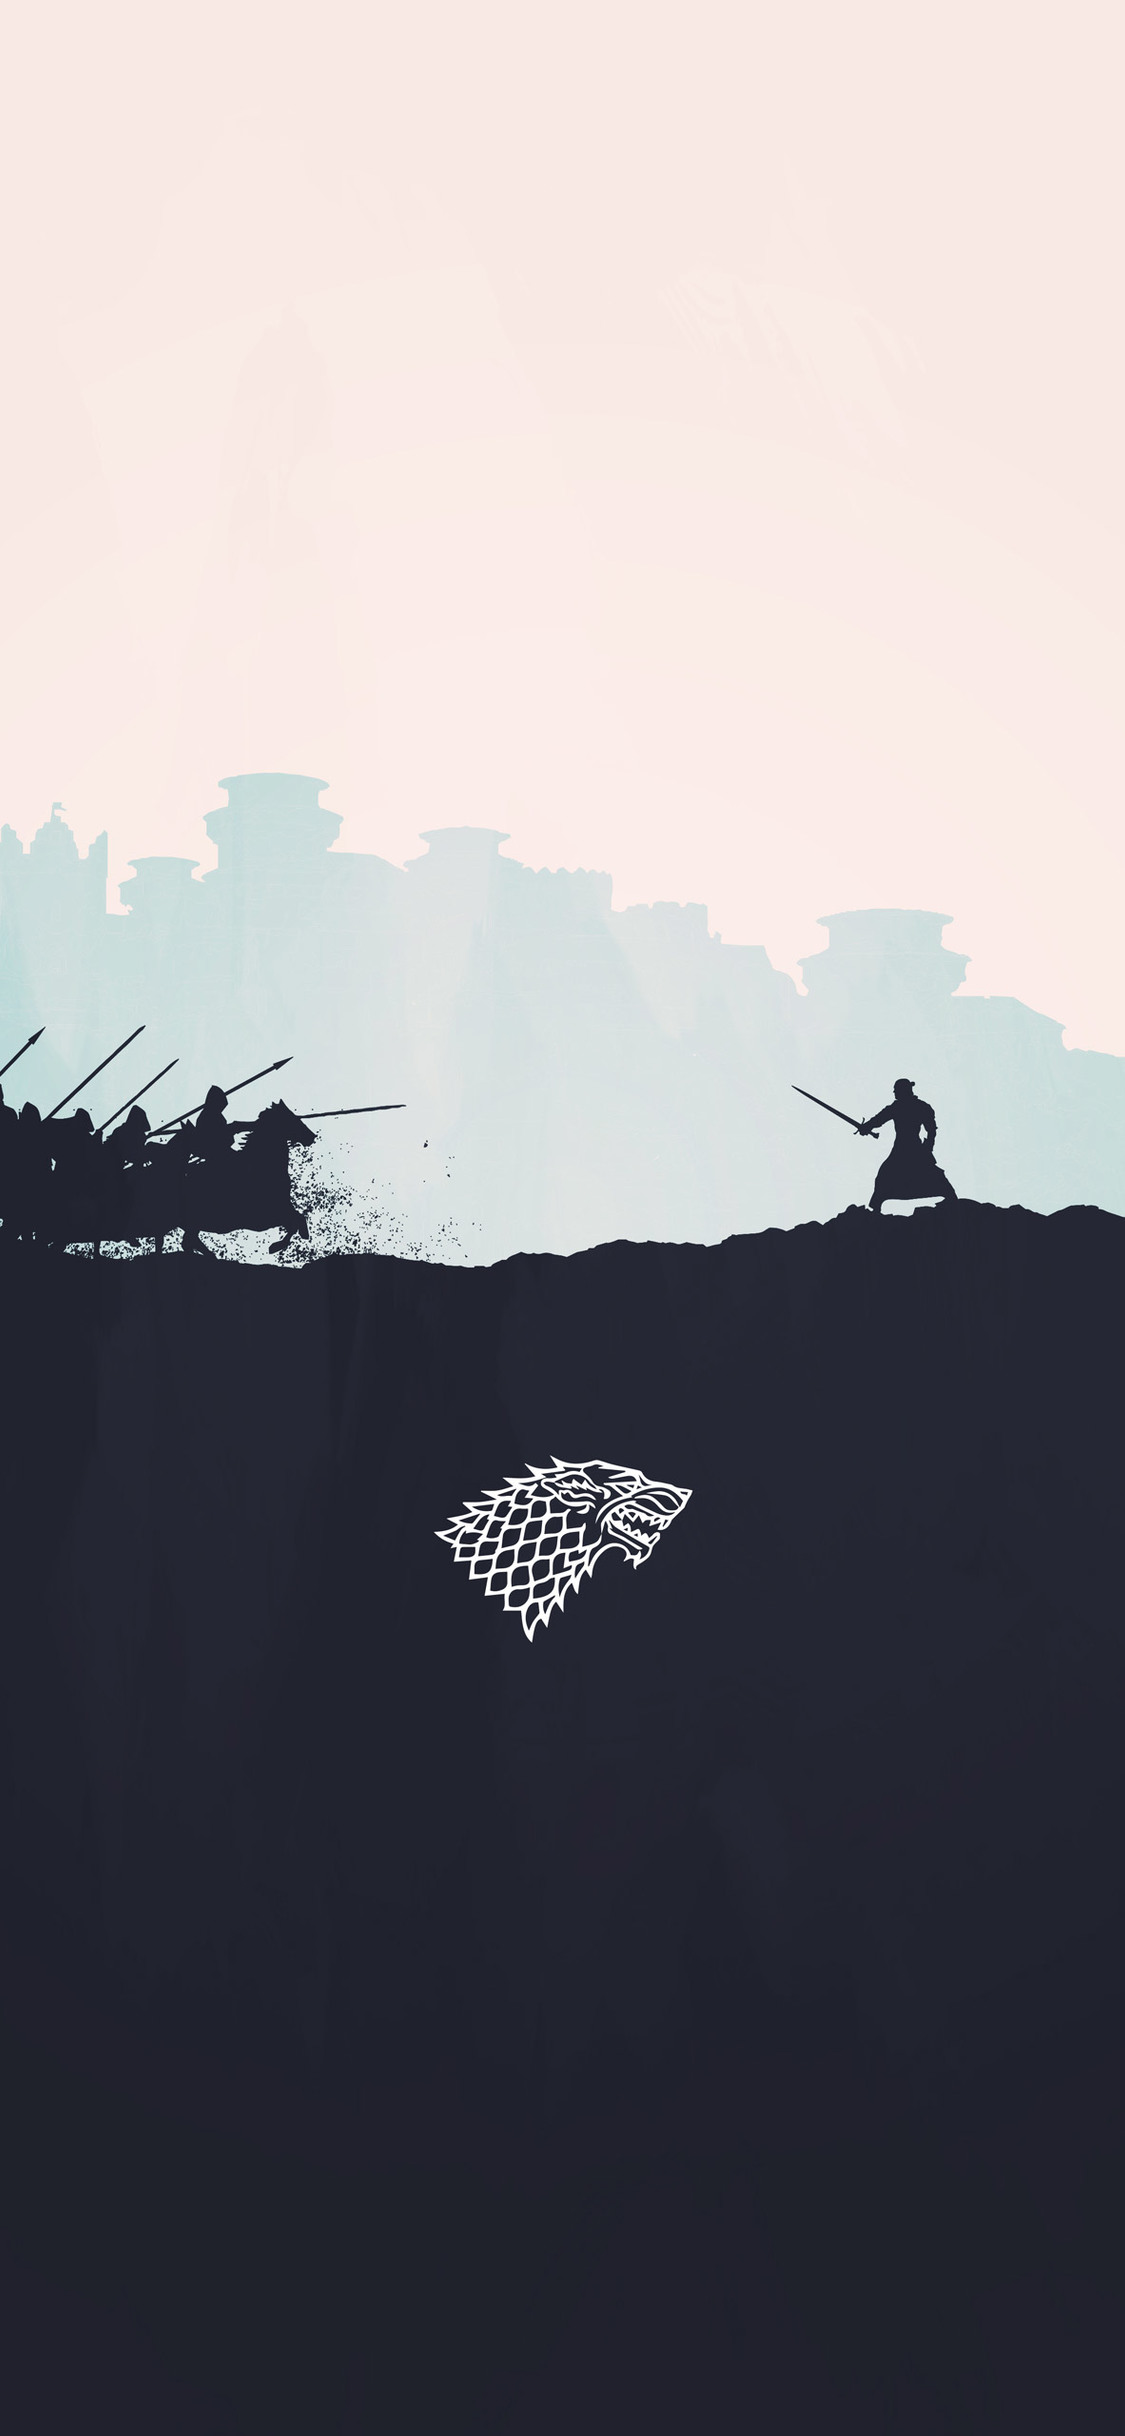 jon snow minimalism iPhone game of thrones wallpaper - Tổng hợp ảnh nền Game of Thrones đẹp nhất cho iPhone